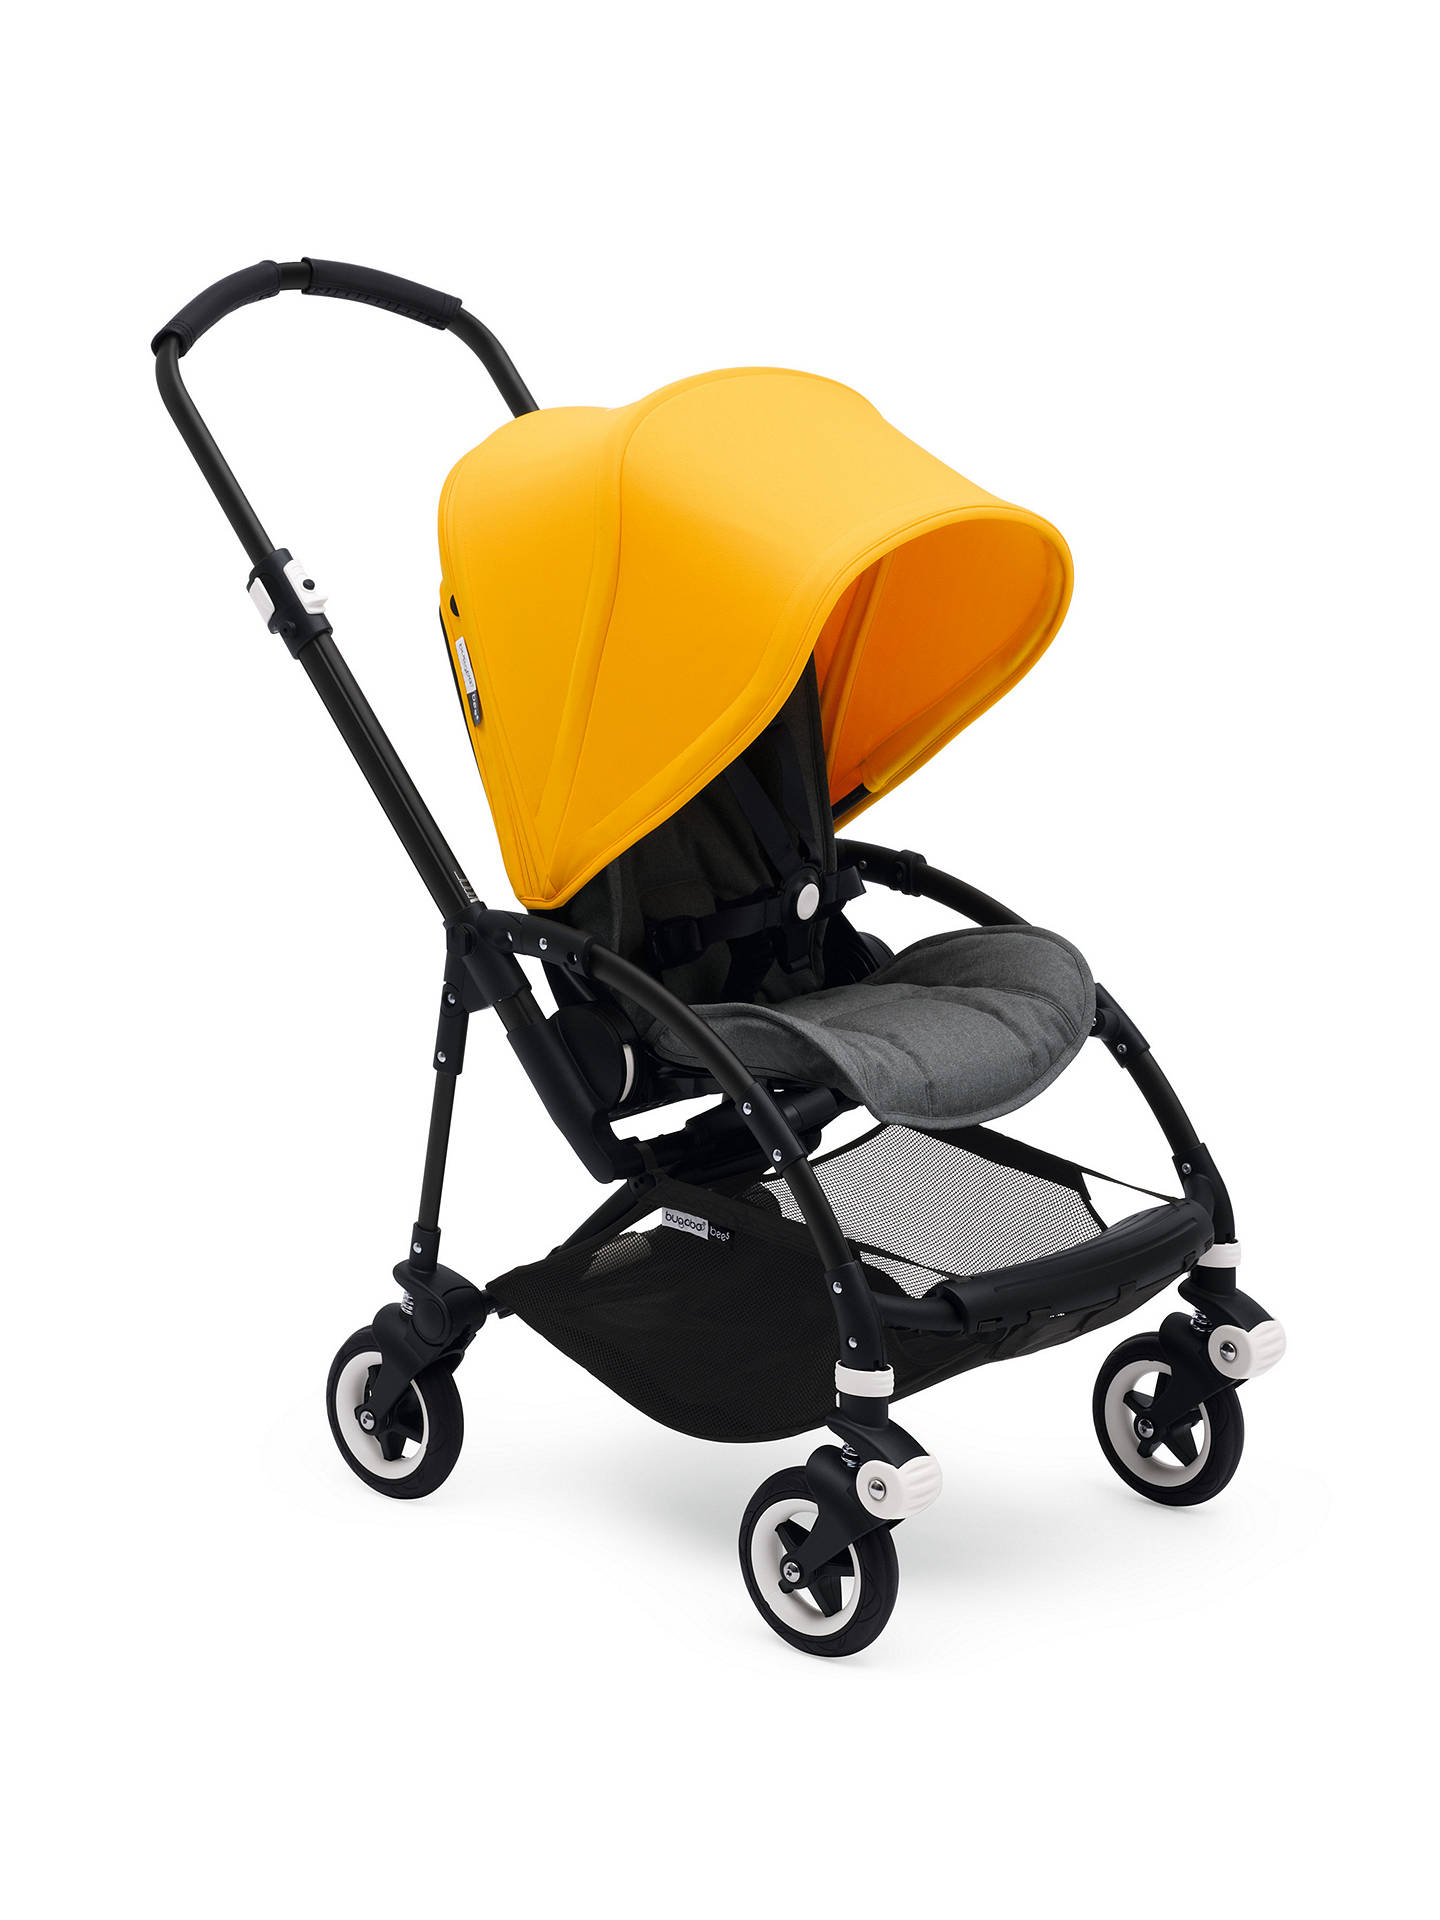 BuyBugaboo Bee 5 Pushchair Sun Canopy, Sunrise Yellow Online at johnlewis.com